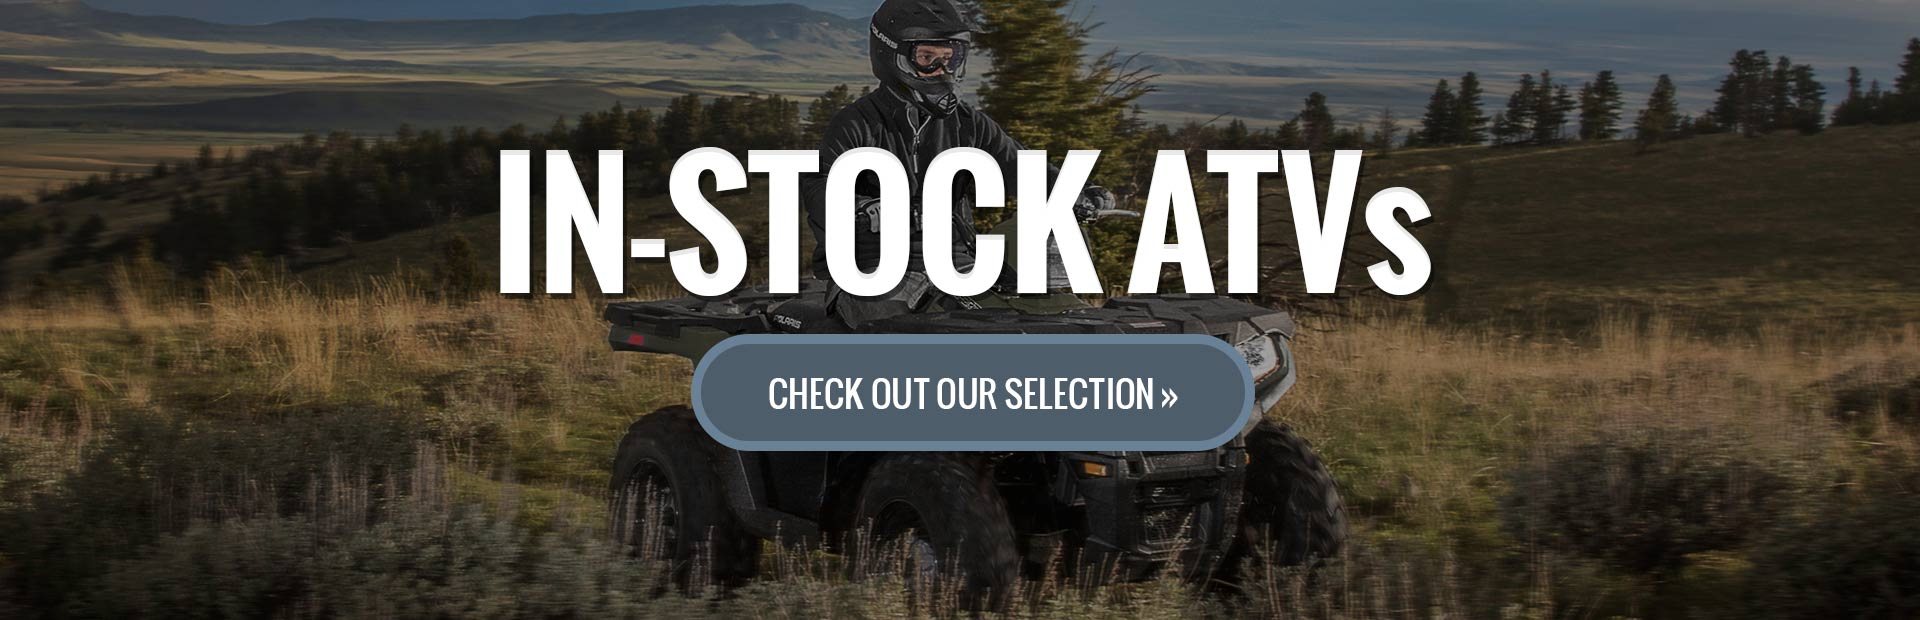 Check out our selection of in-stock ATVs!